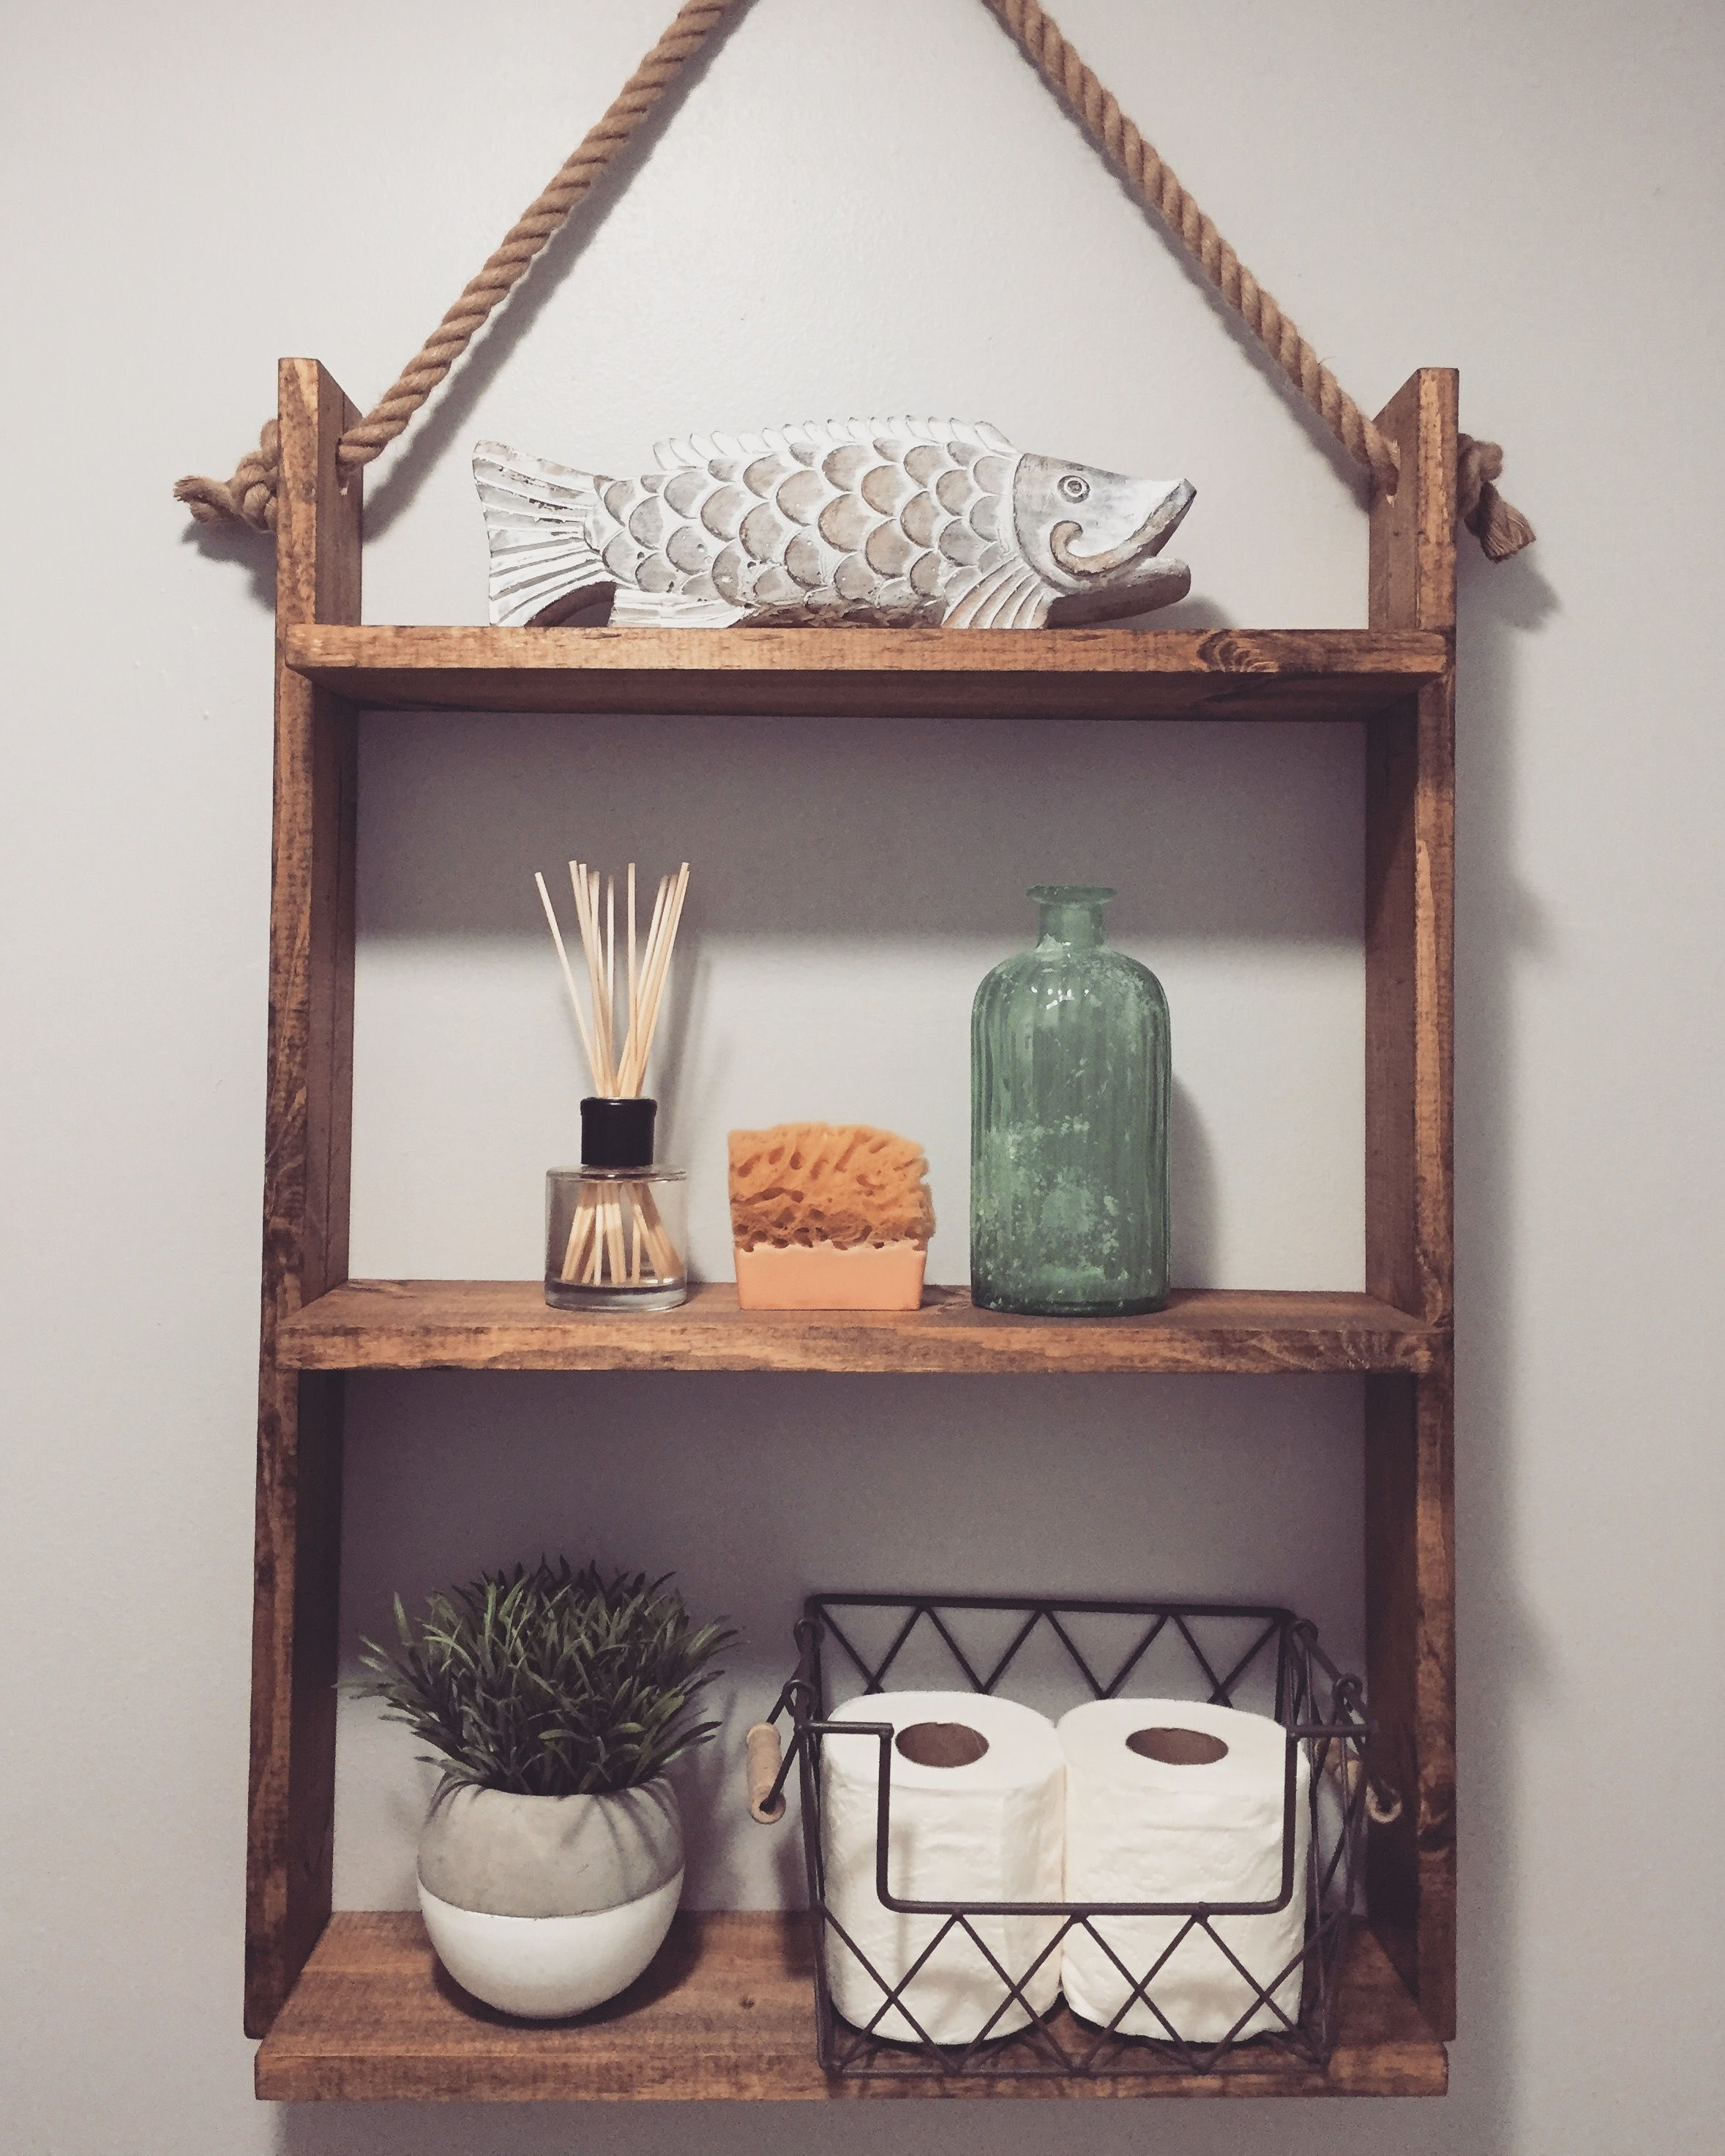 Diy Hanging Ladder Shelf Super Easy 1x4x8 1x6x8 1 Inch Rope From Craft Store Desired Wood Stain Diy Hanging Shelves Hanging Ladder Ladder Shelf